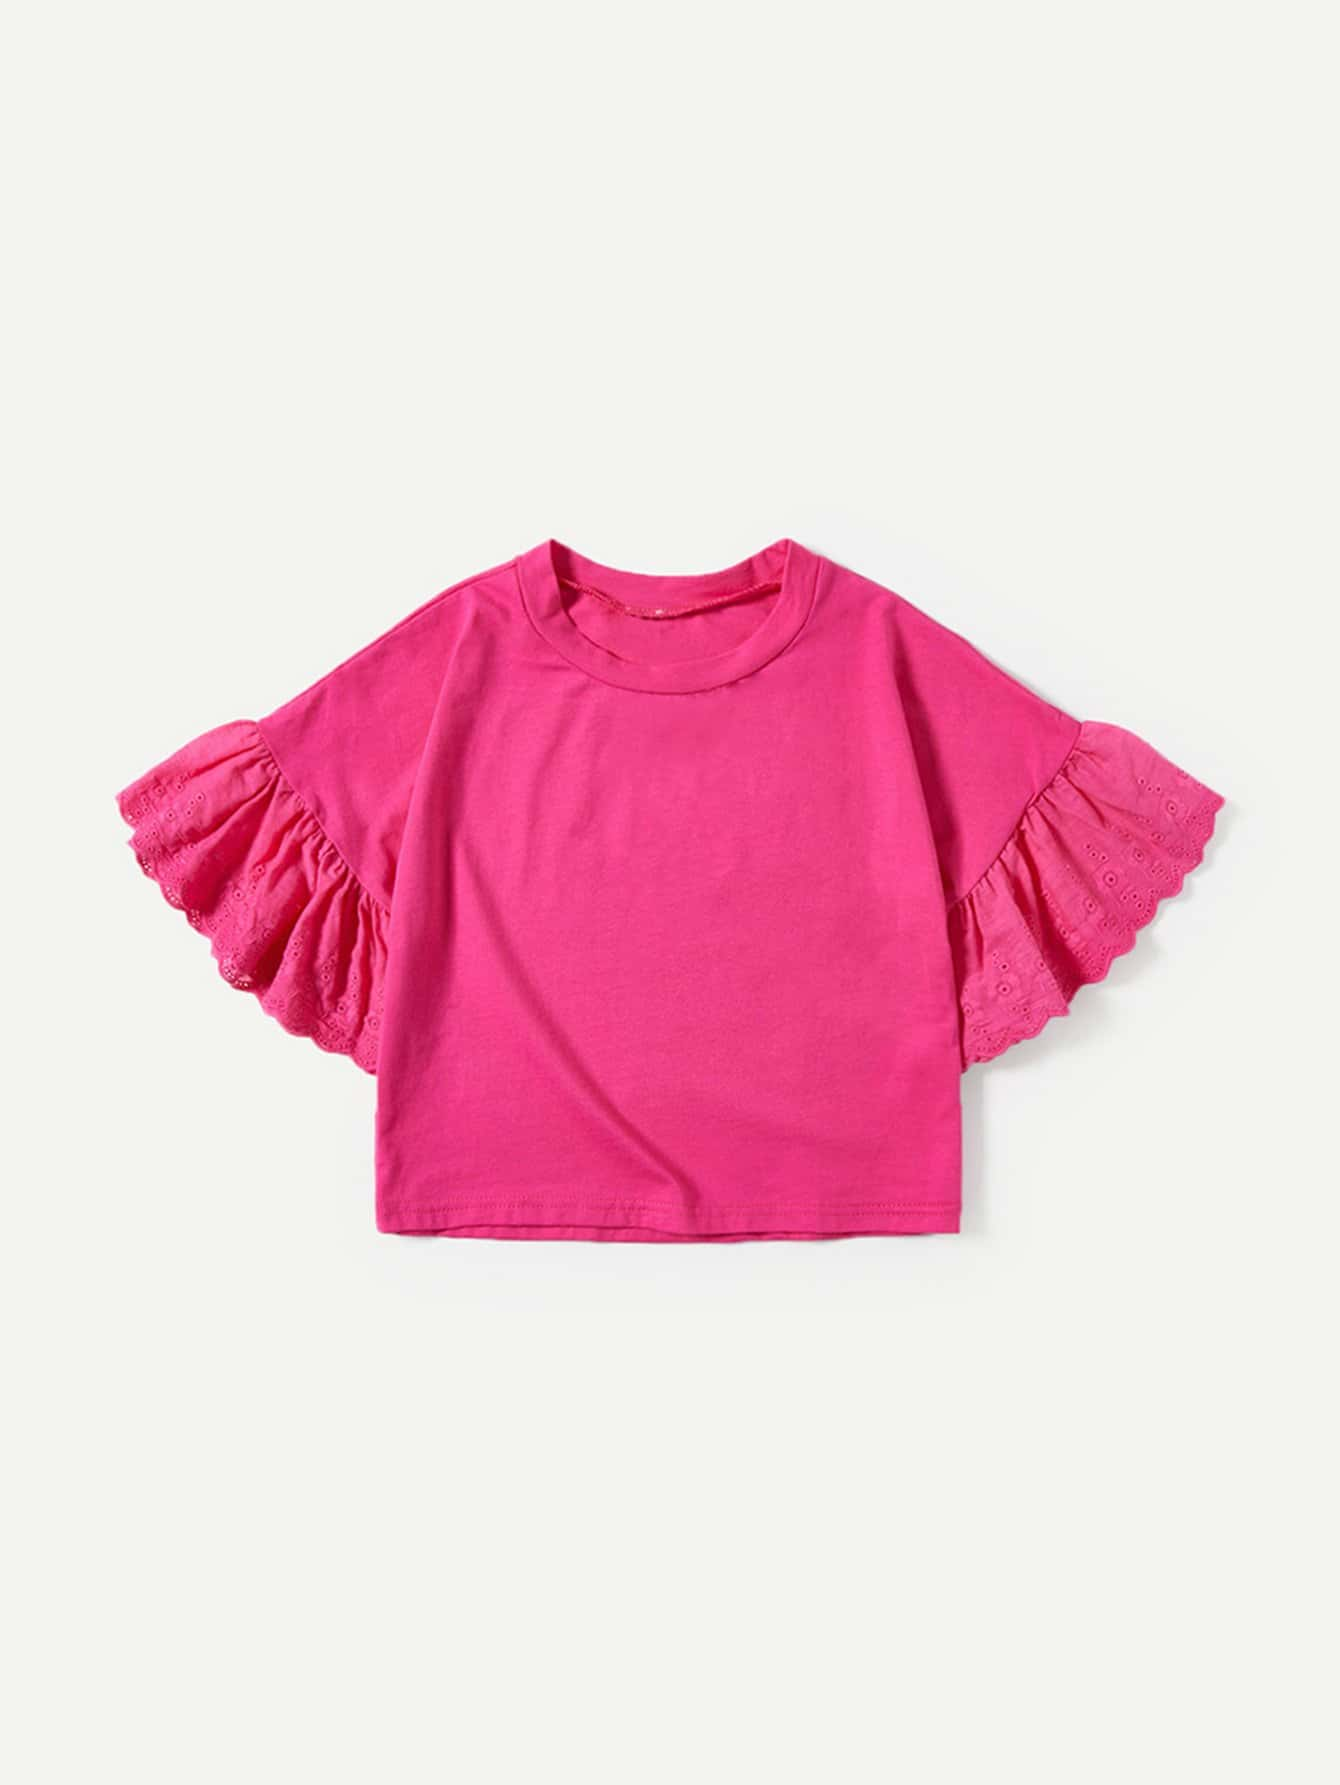 Girls Eyelet Embroidered Flounce Sleeve Tee